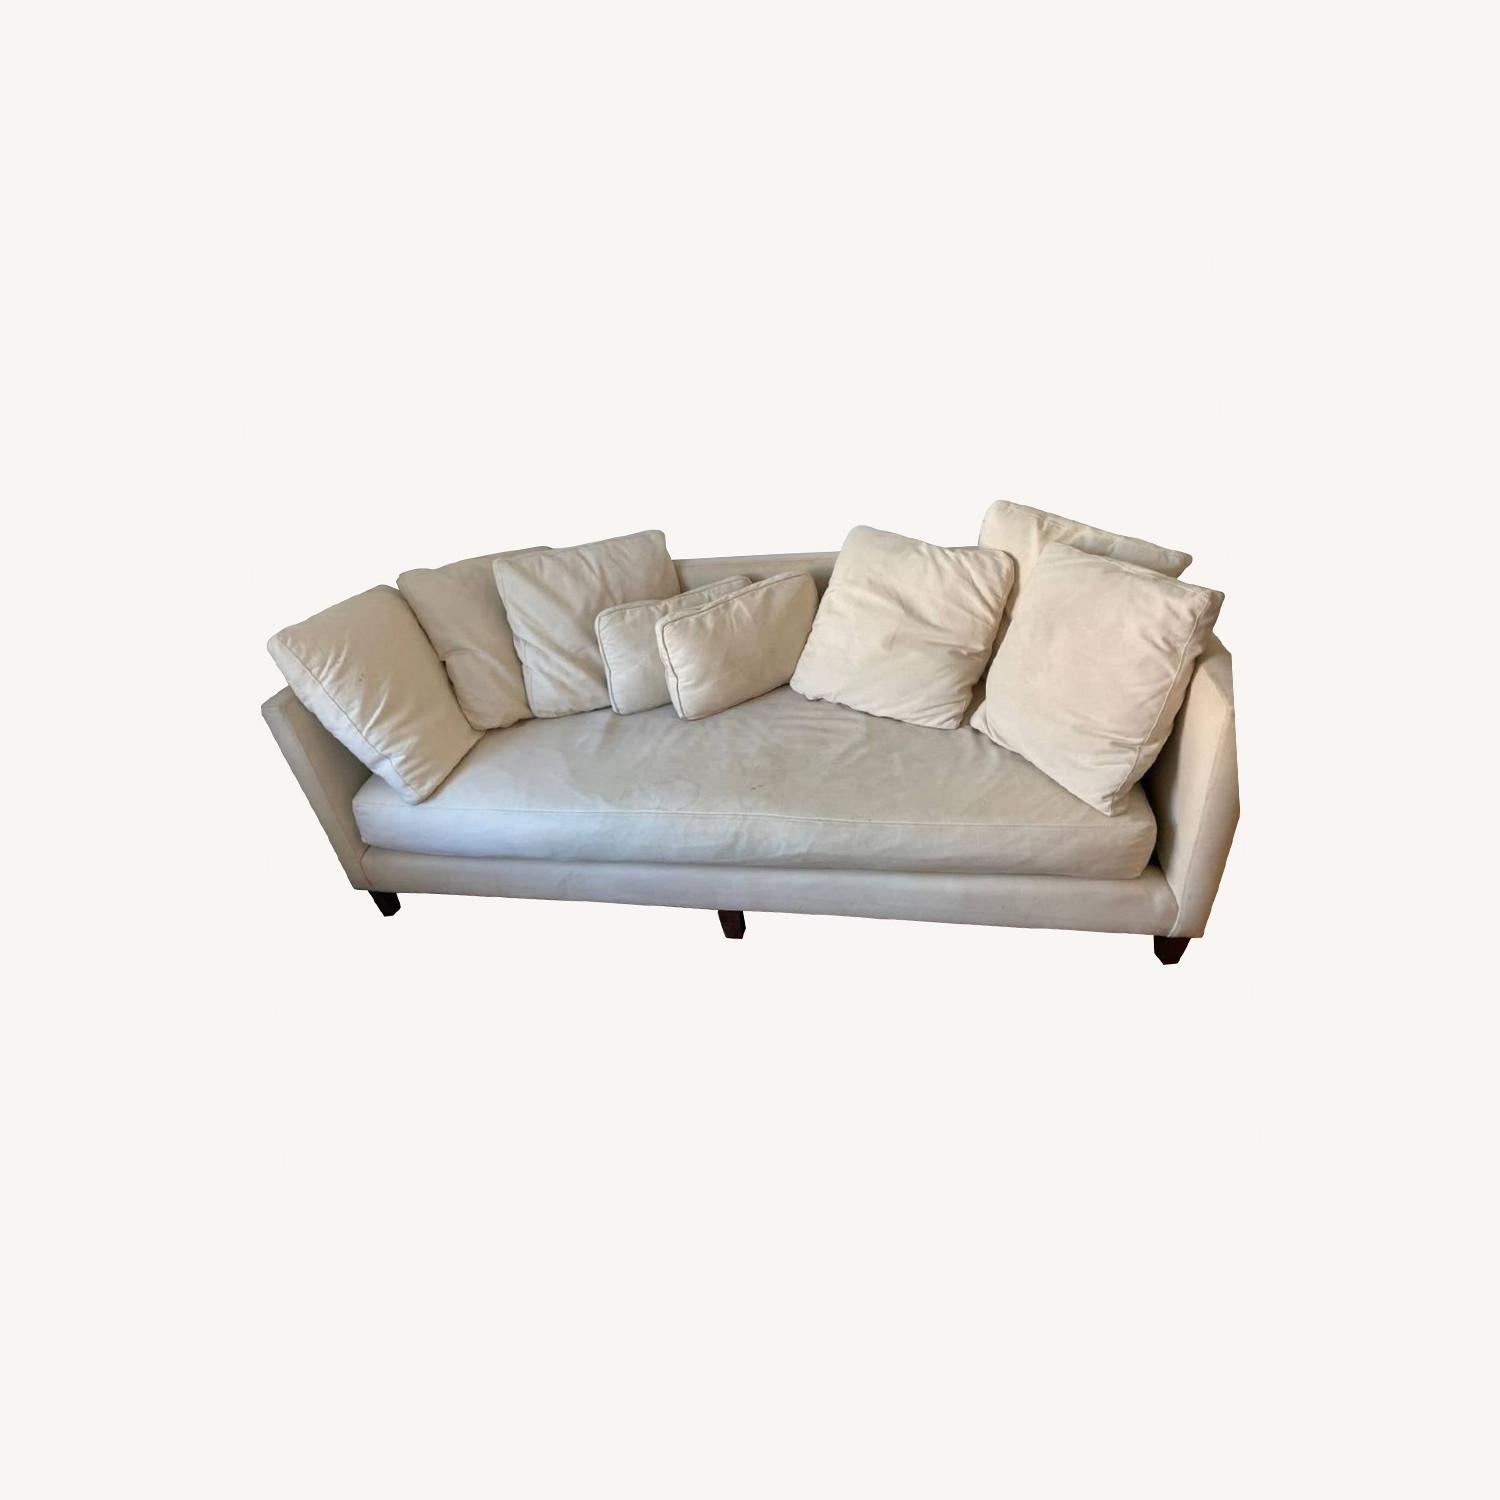 Crate & Barrel Wood Leg Couch - image-0